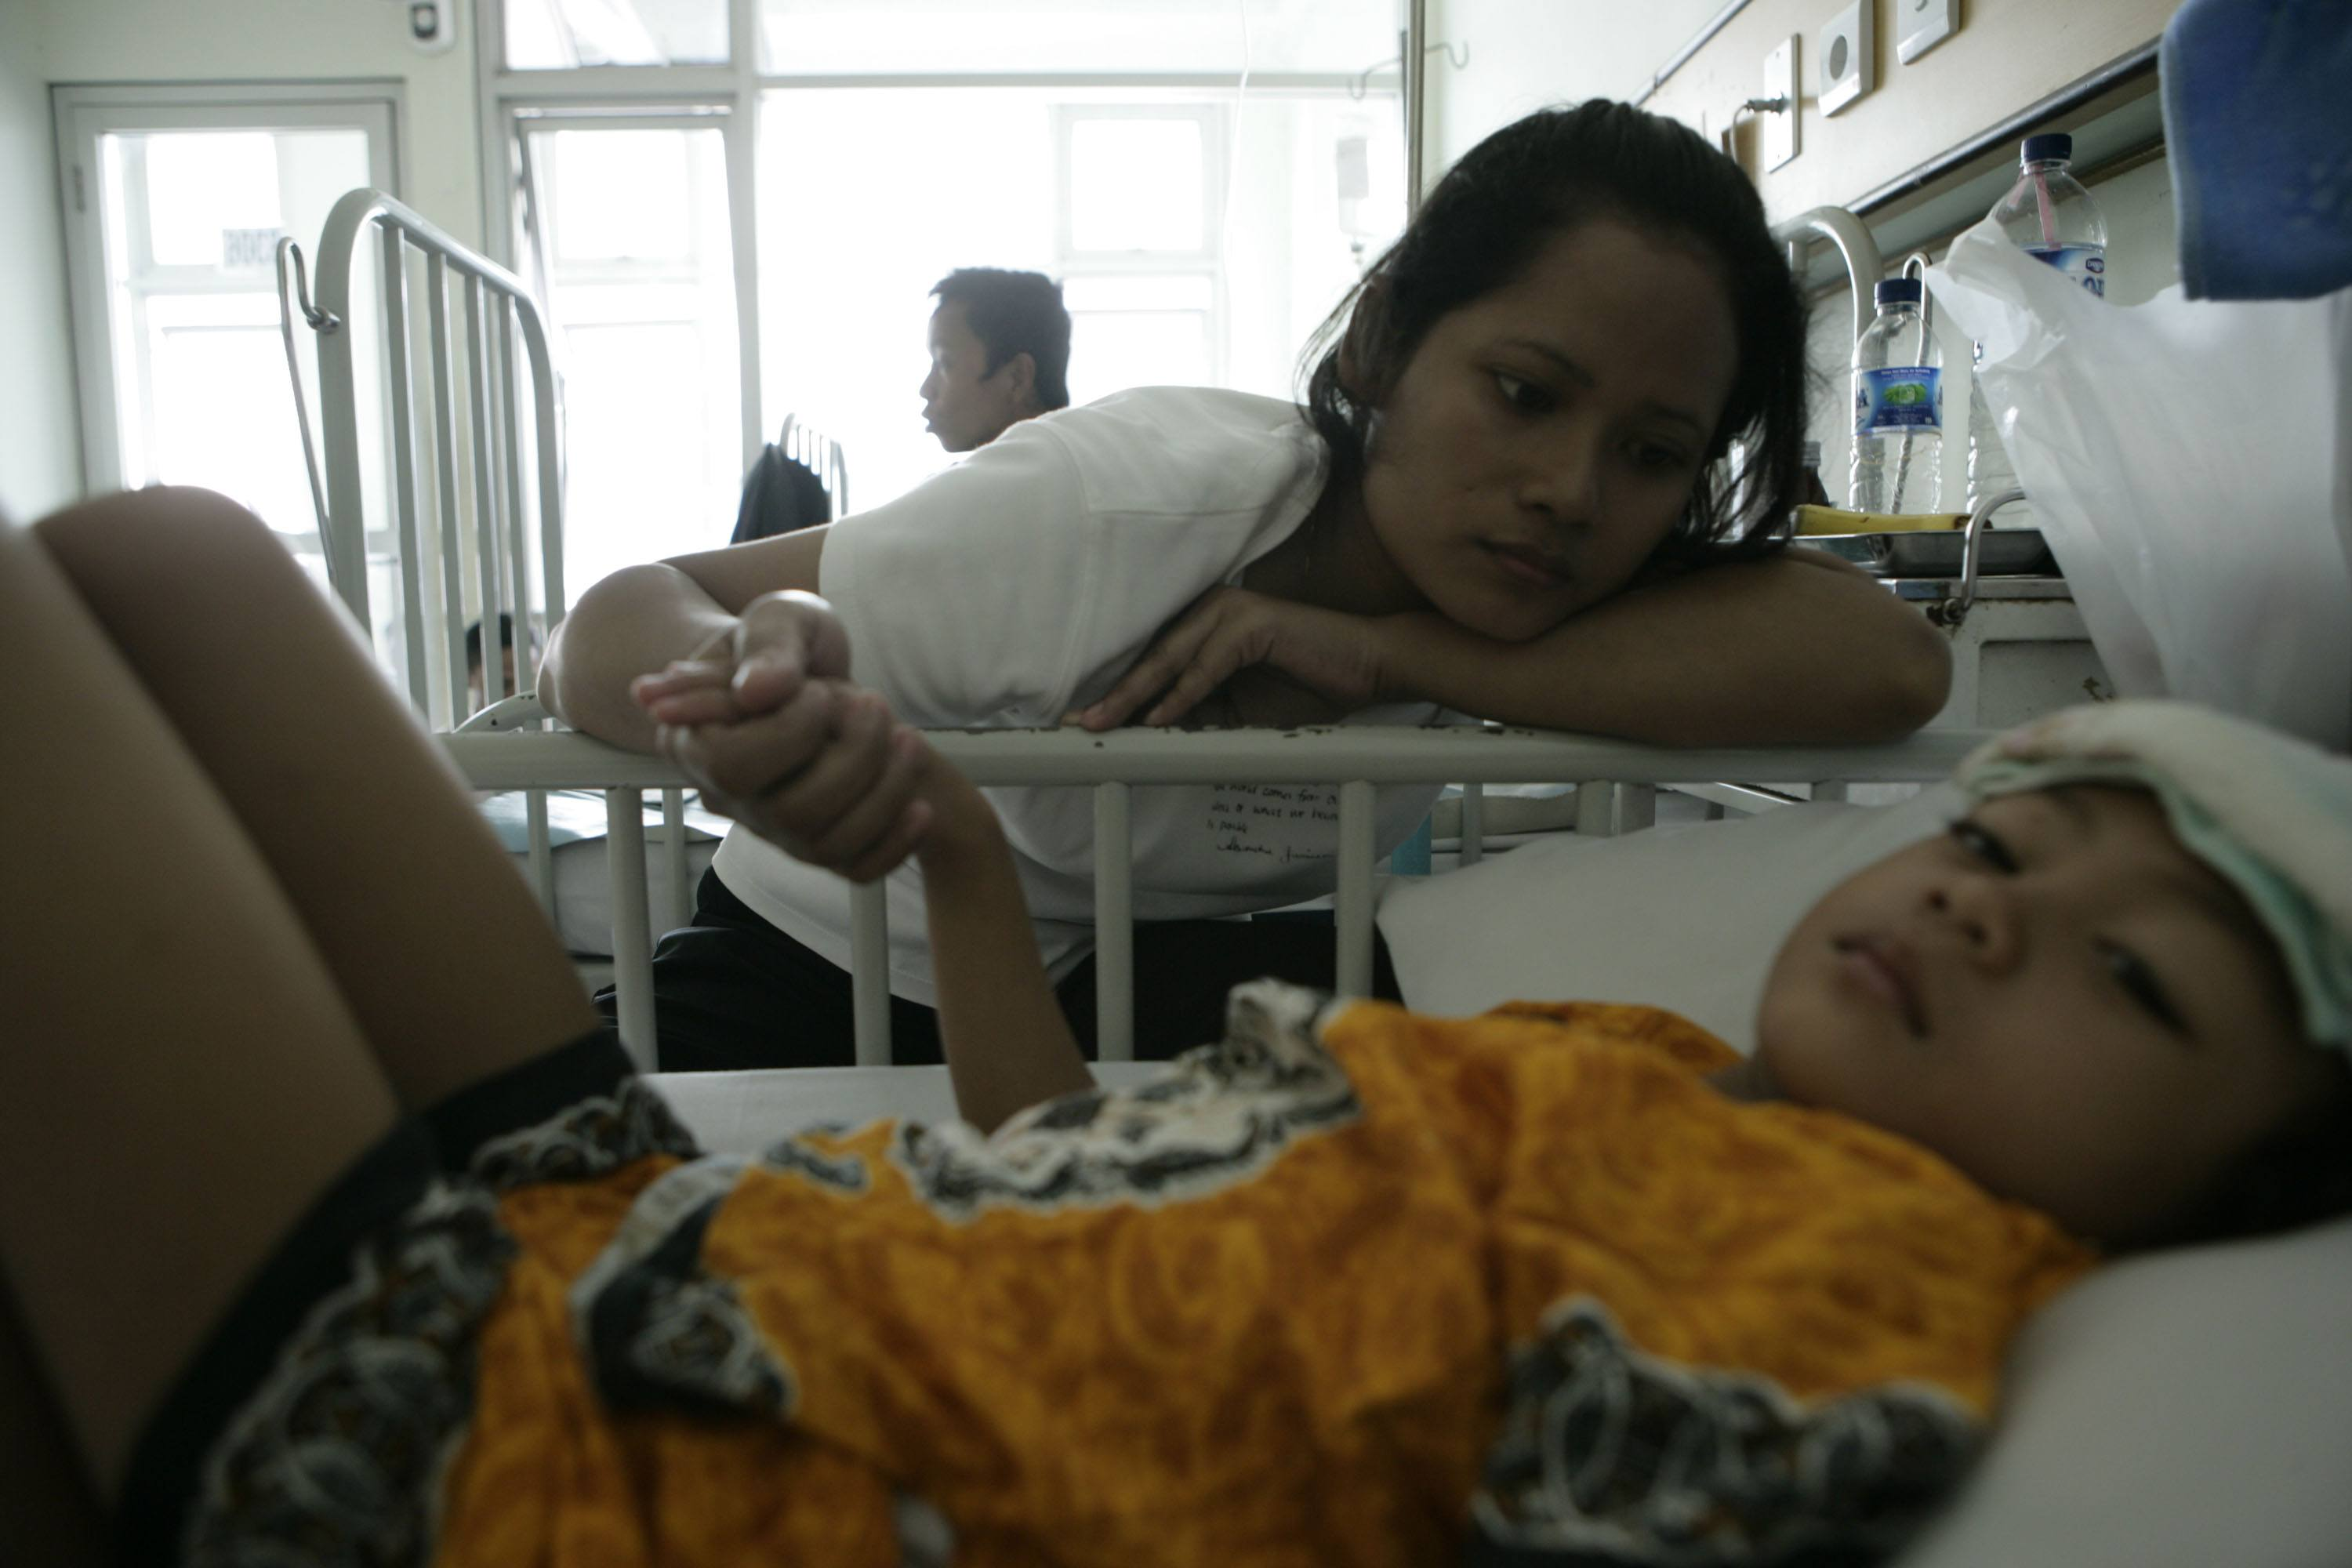 A Dengue Fever sufferer is treated at a hospital